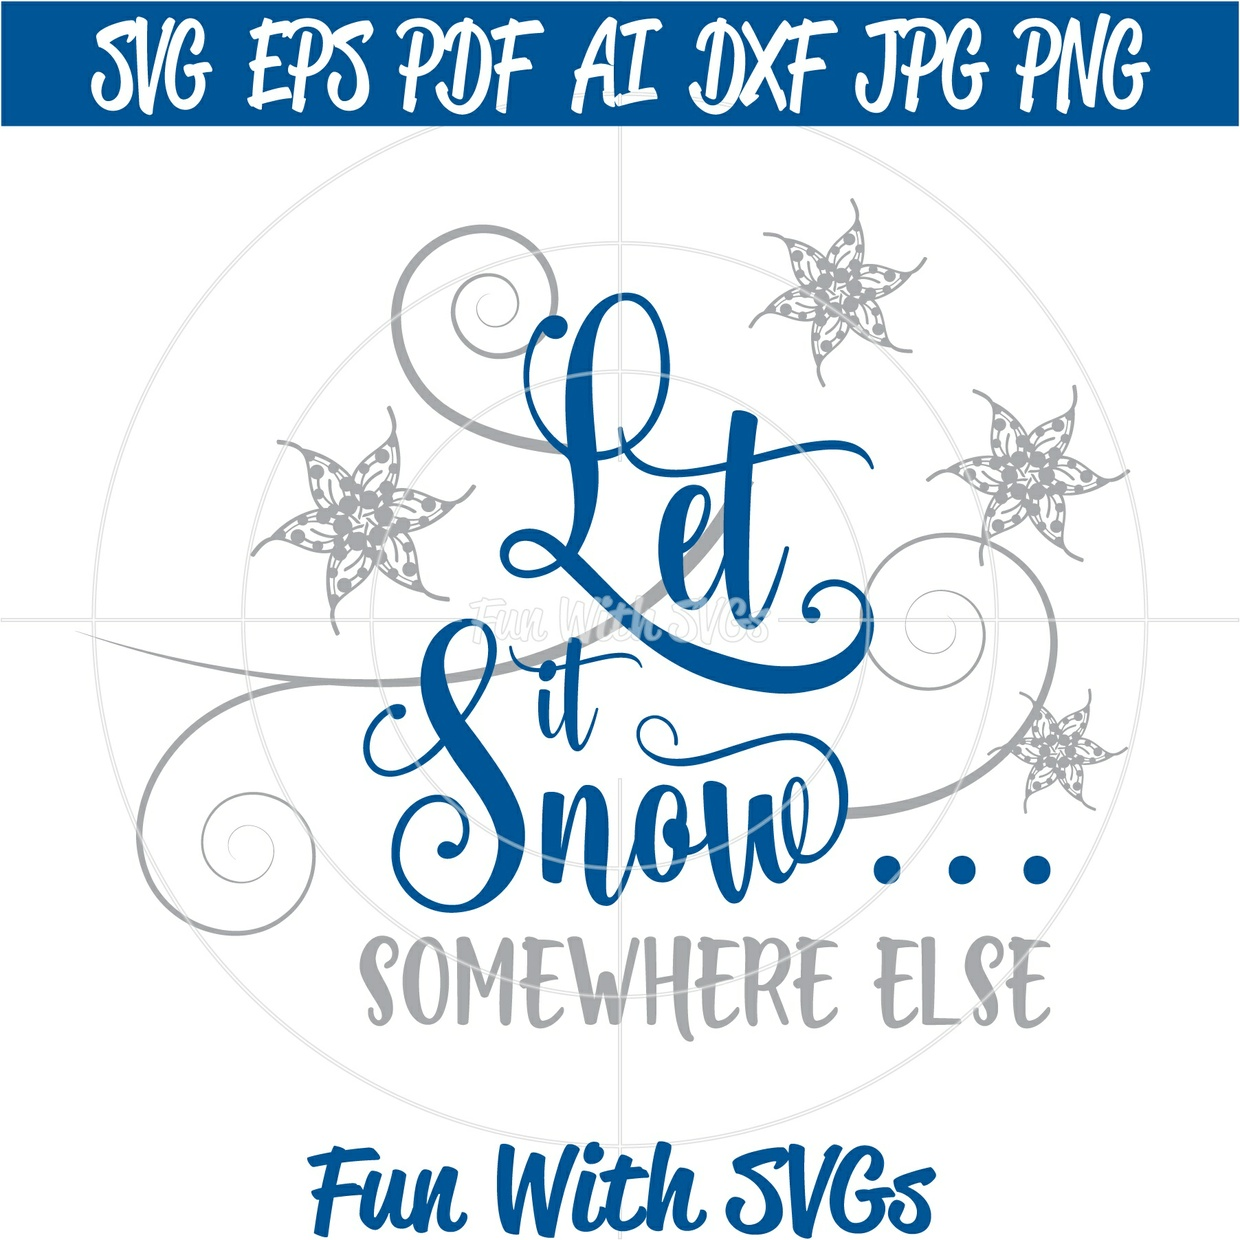 Let It Snow Somewhere Else, Snow SVG, SVG Files, Winter, Christmas, Winter SVGs